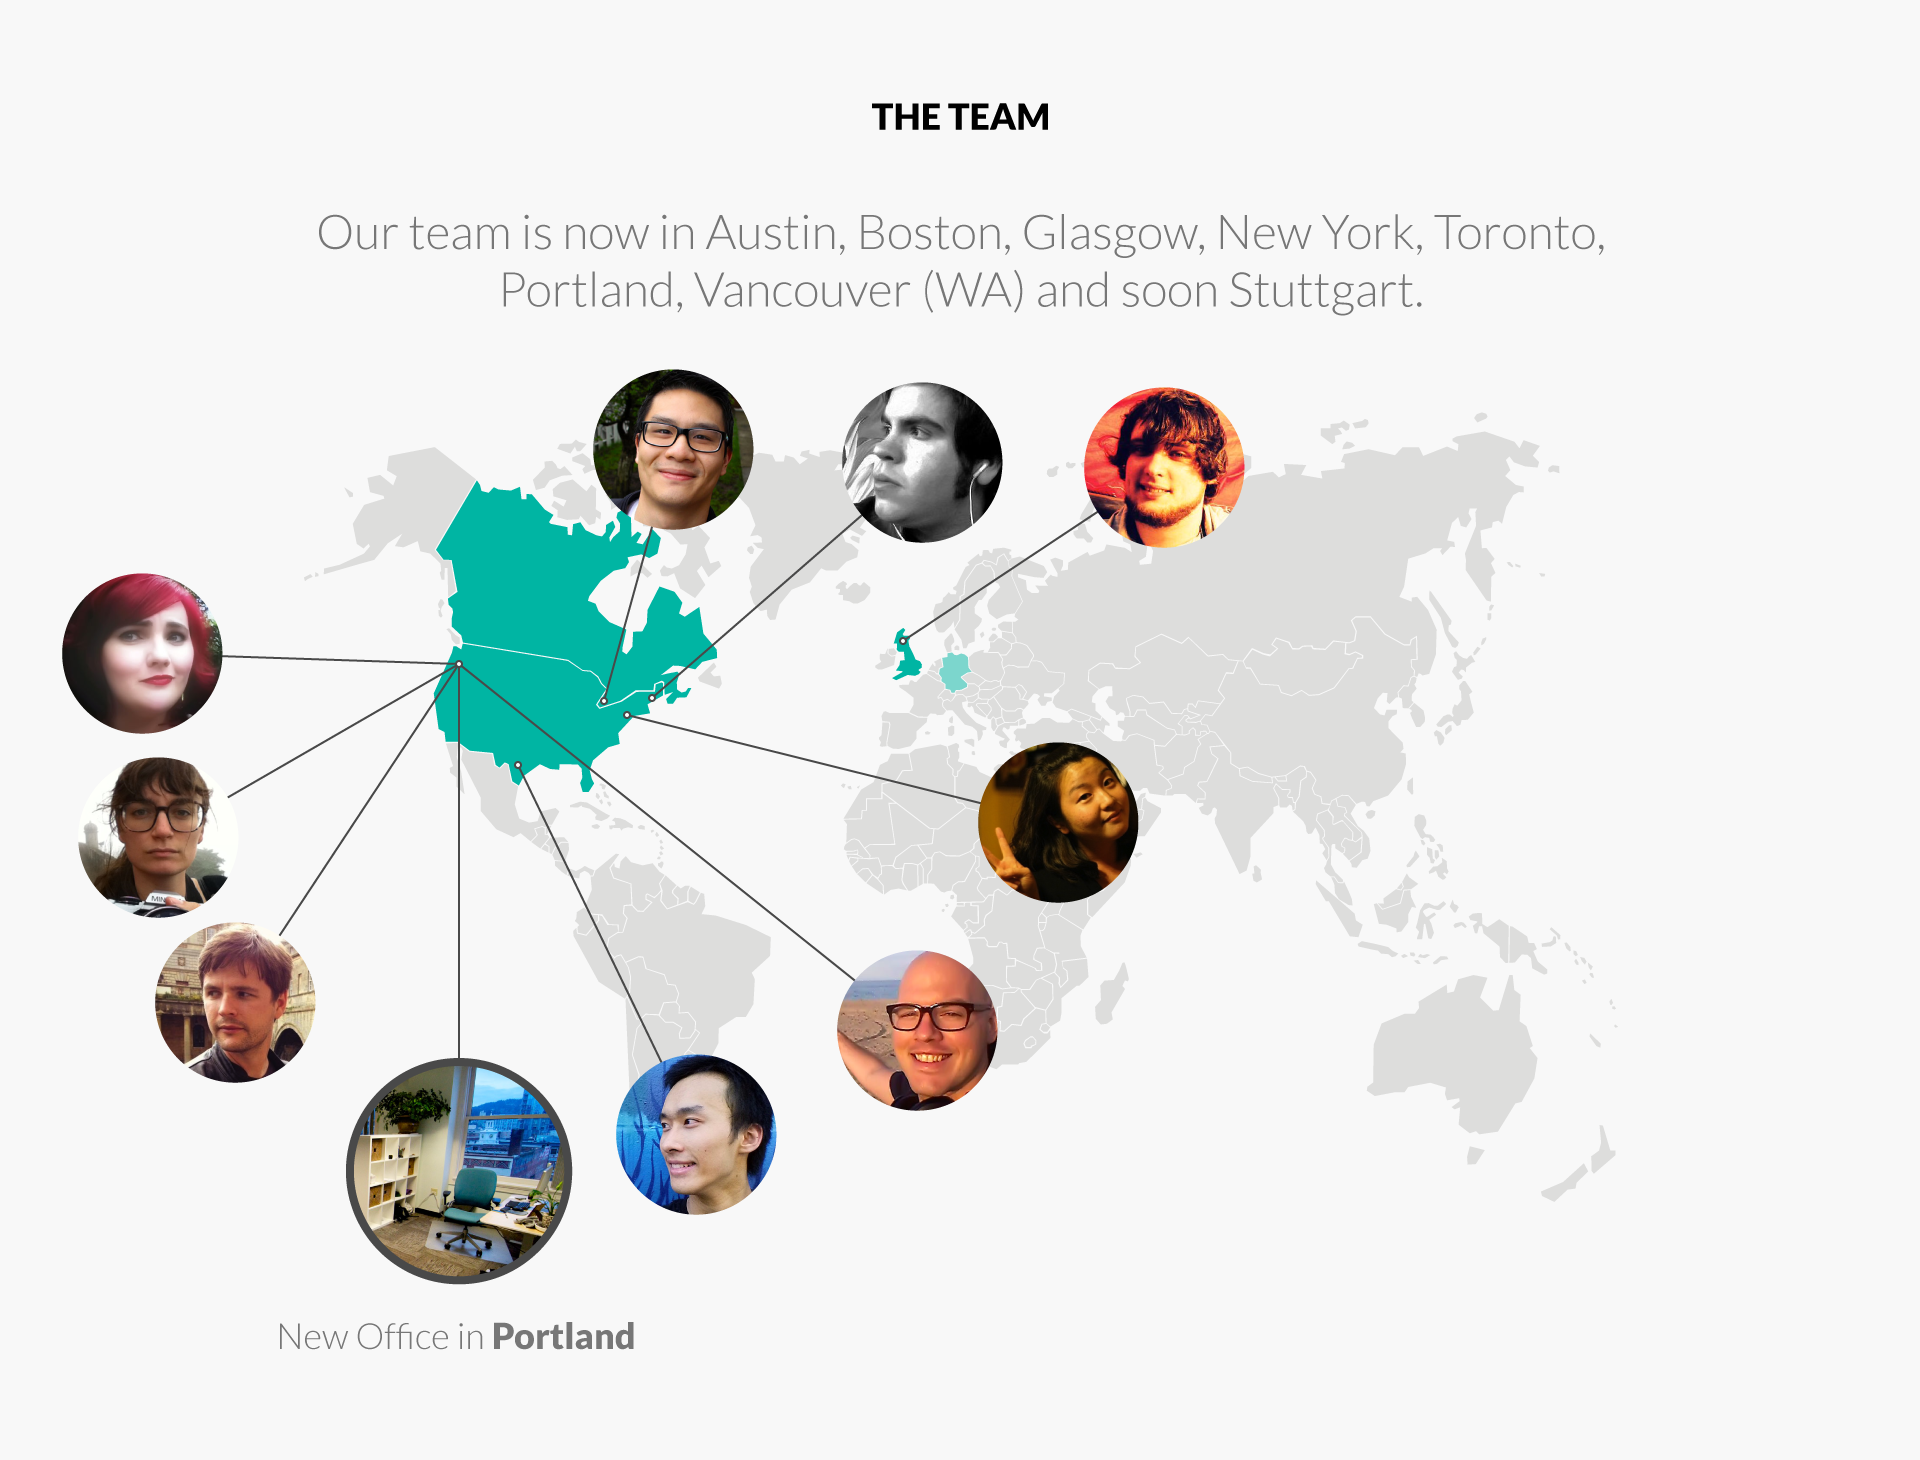 Customer.io - Year in 2014 - The team